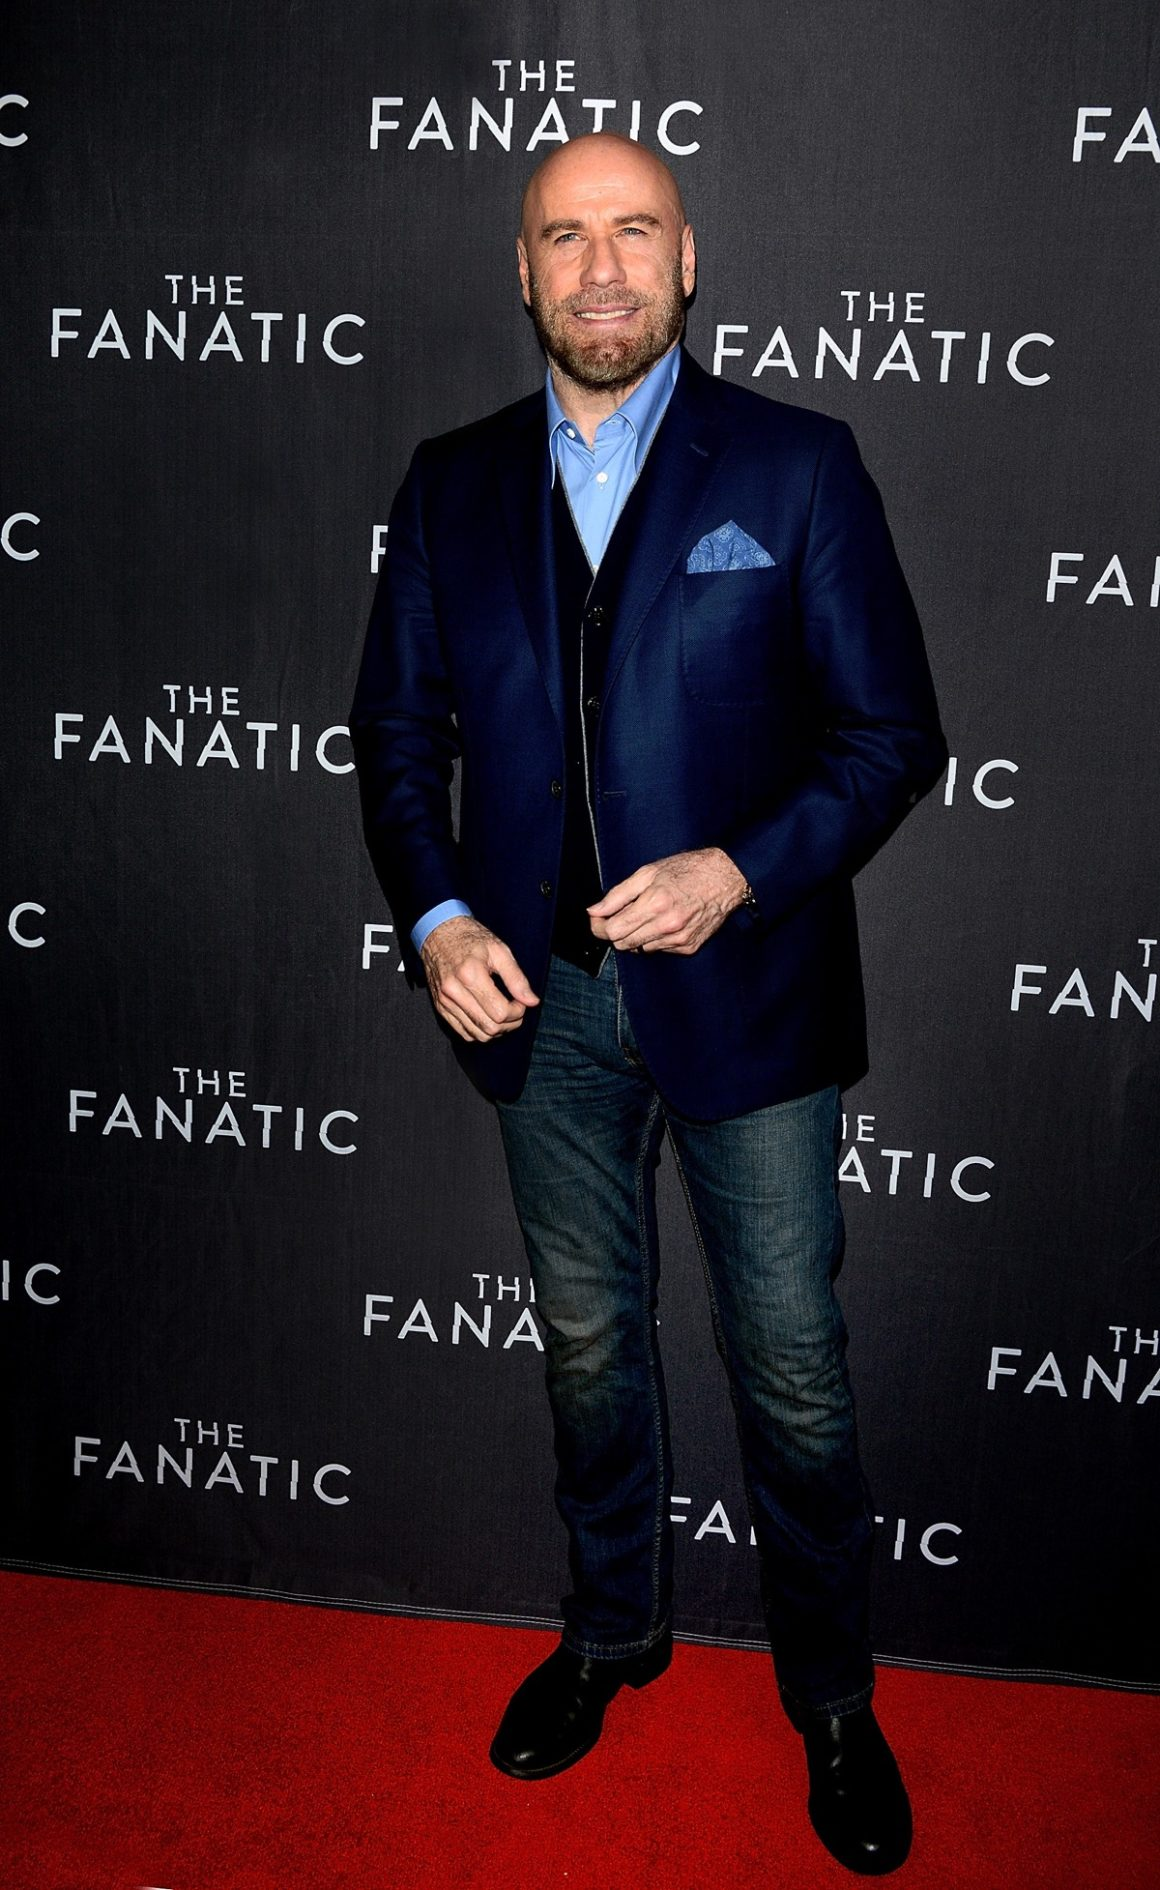 """The Fanatic"" Florida Premiere With Star Of The Film John Travolta"